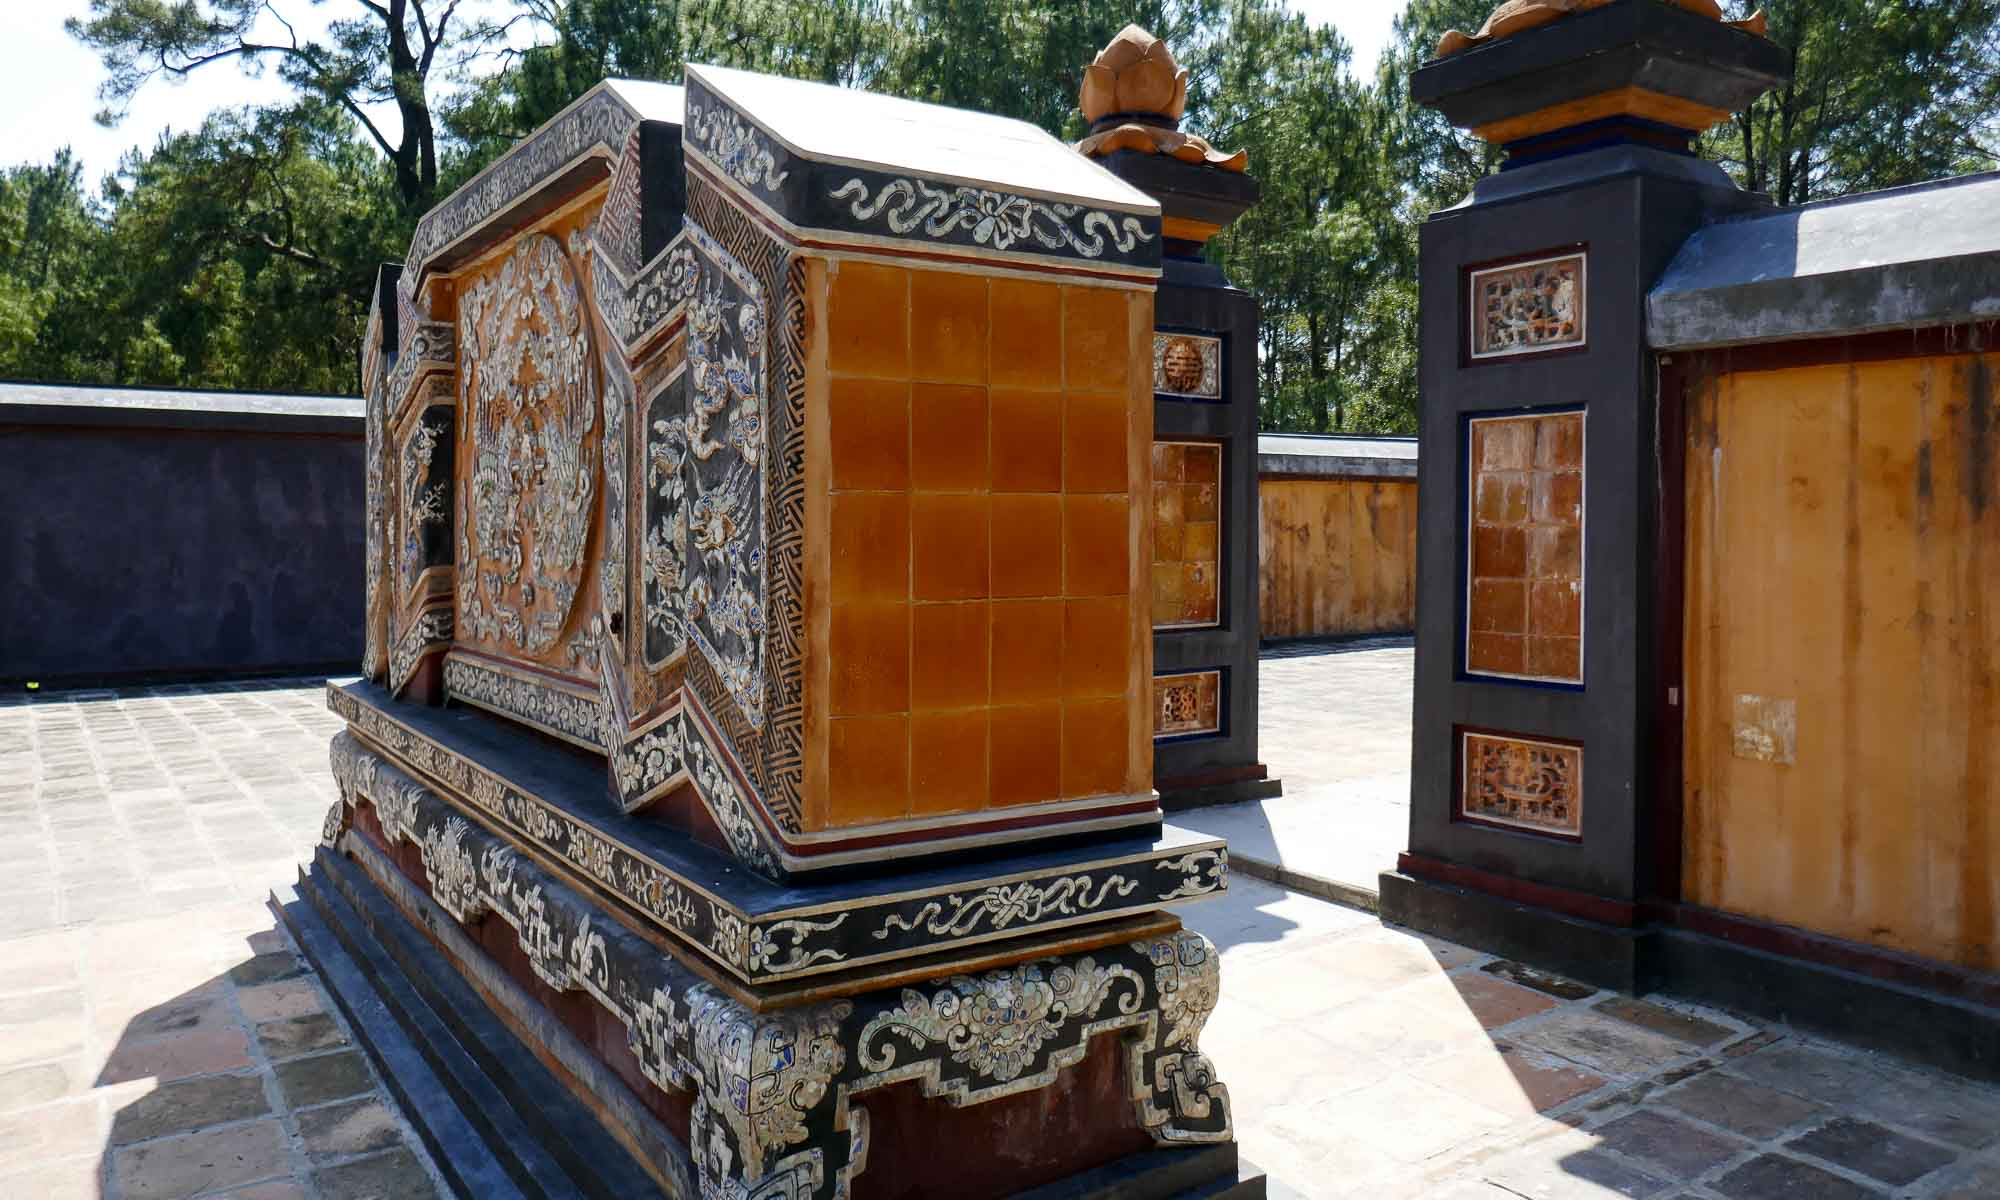 Entrance to the tomb of Empress Le Thien Anh, the emperor's primary wife